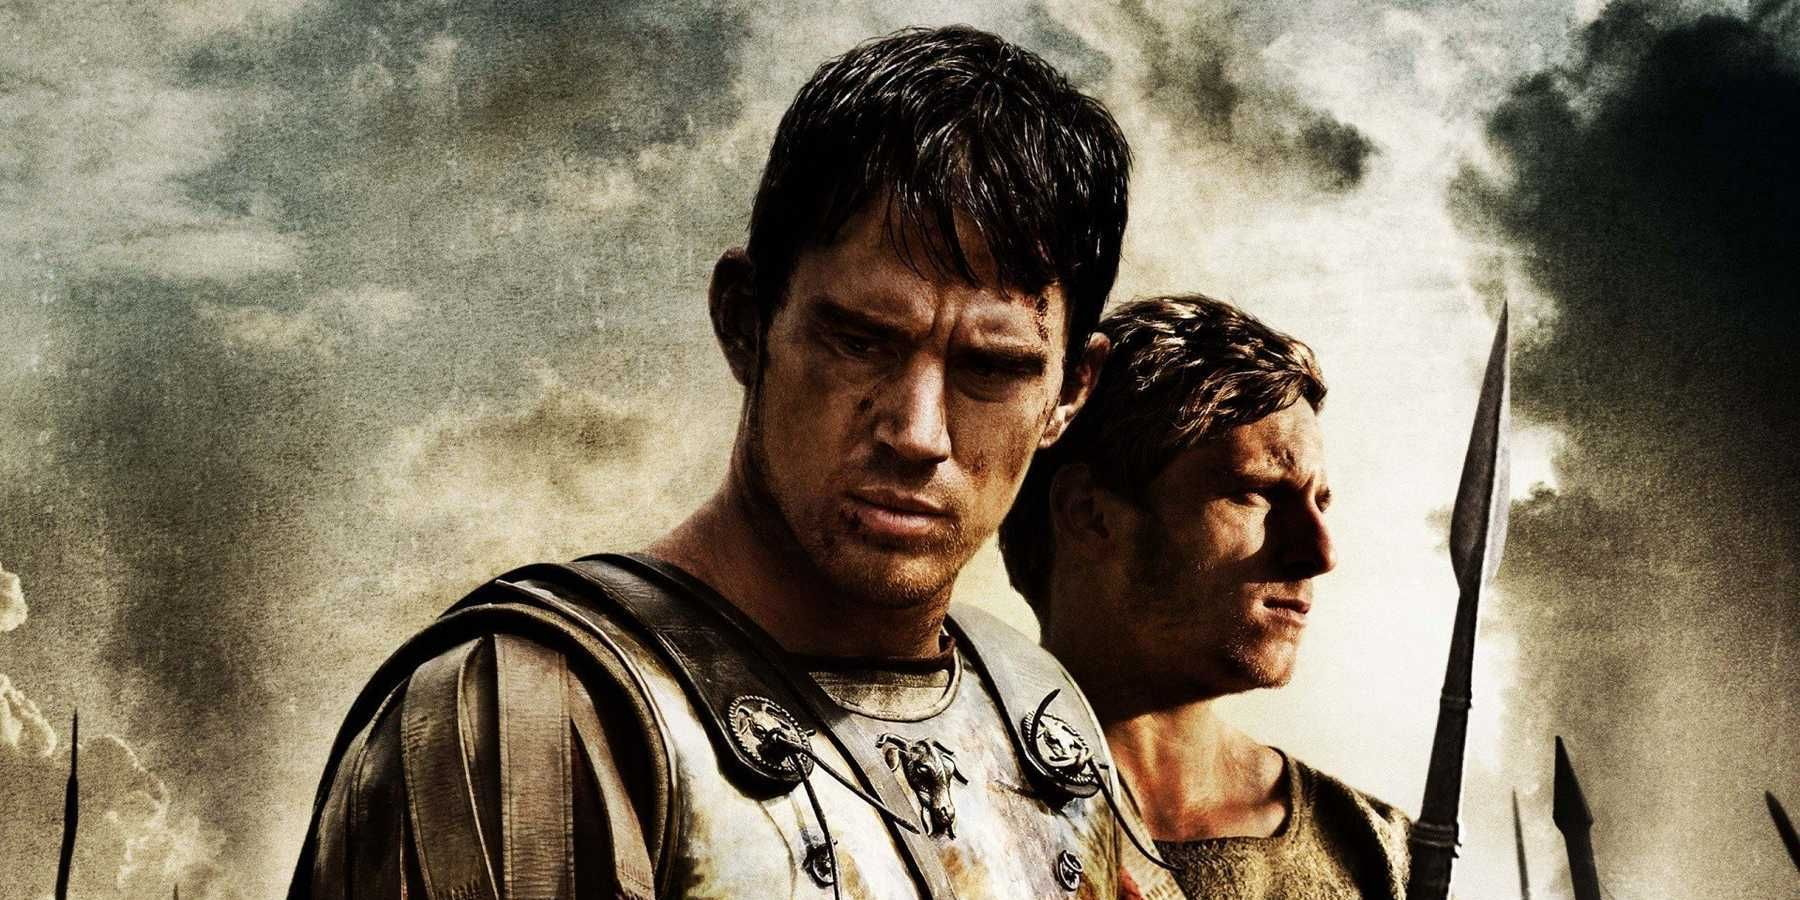 15 Movies To Watch If You Love Gladiator | ScreenRant